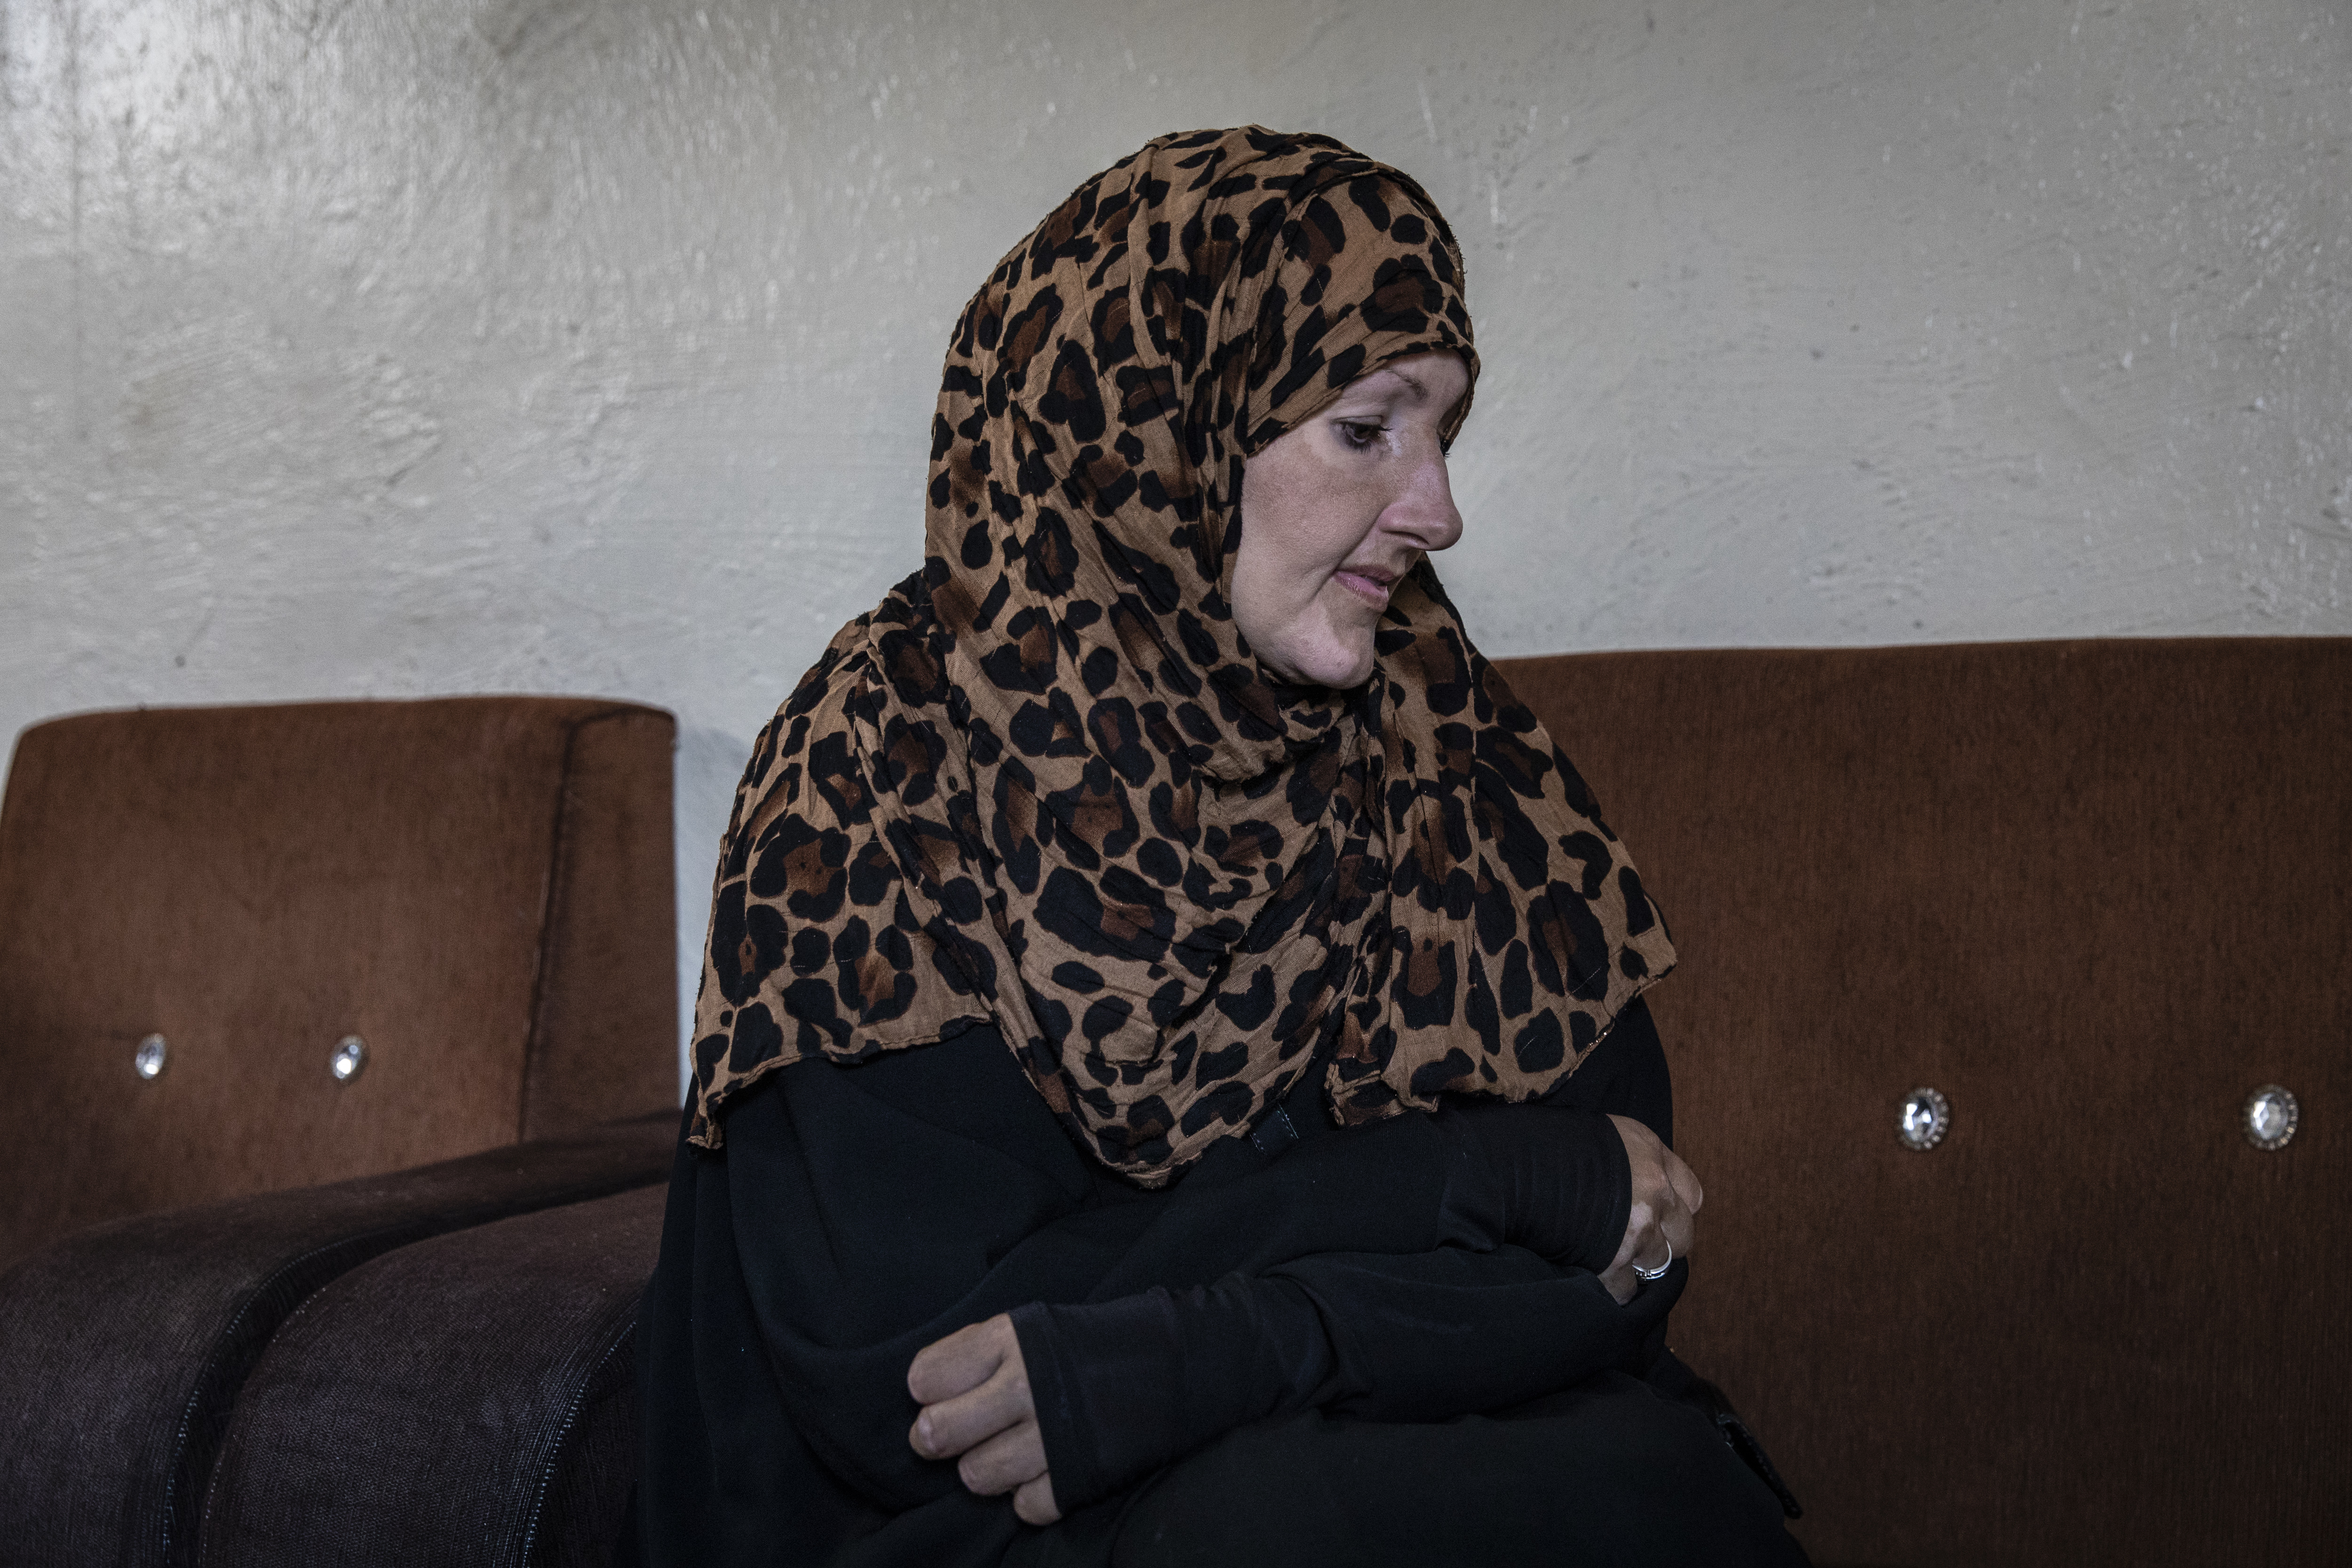 Kimberly Polman, who was born into a Mennonite community in Canada and traveled to live in the Islamic State group's self-declared caliphate, at the Al Hawl detention camp in Syria.